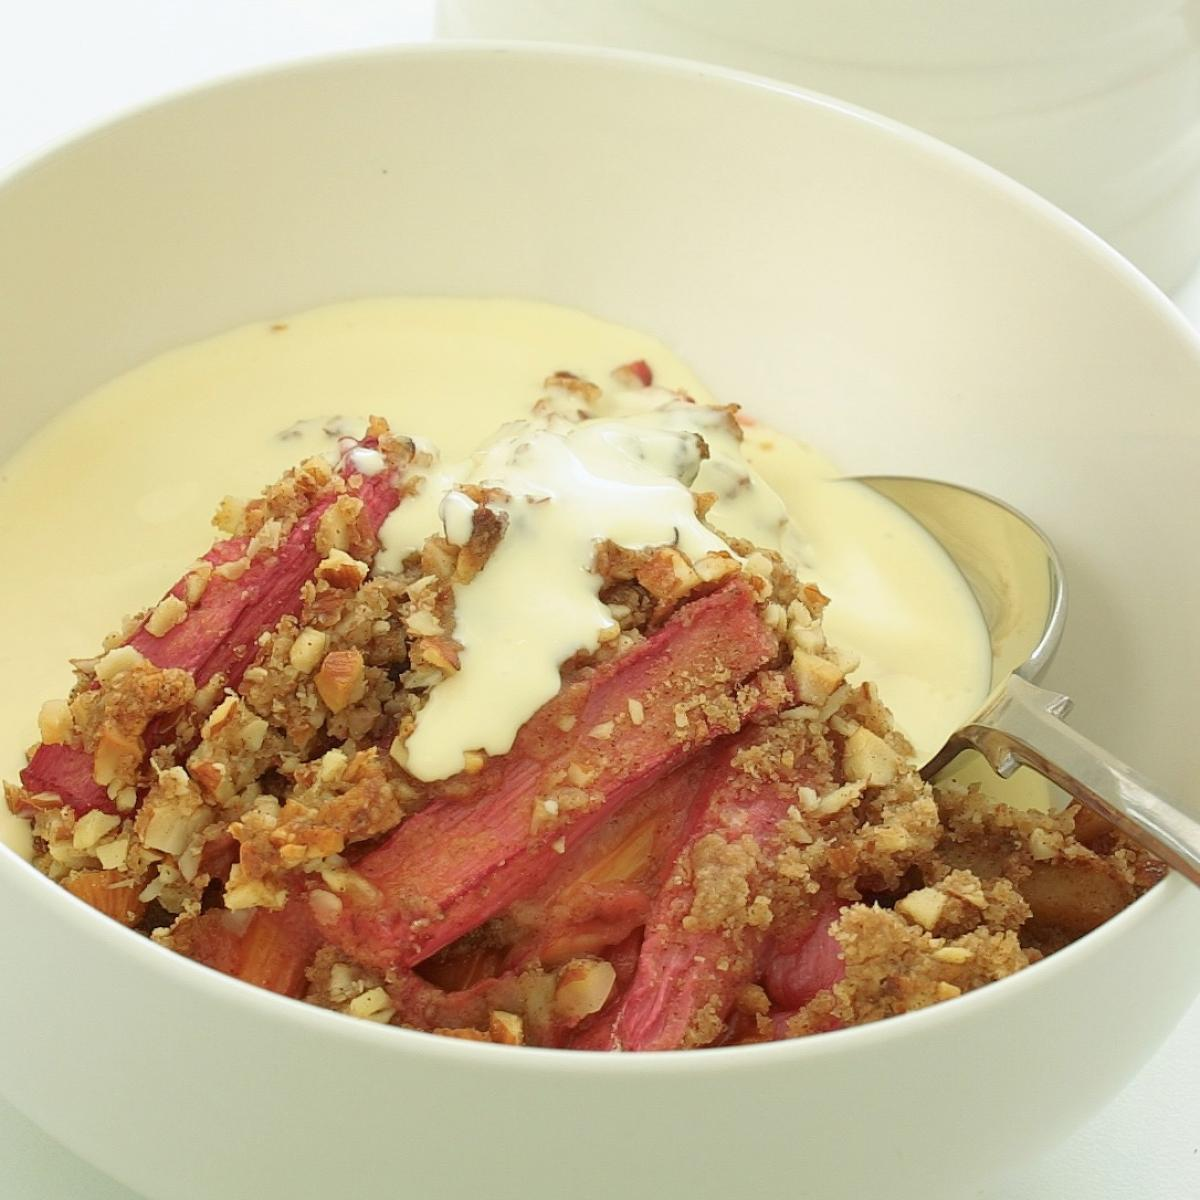 Vegetarian rhubarb and almond crumble